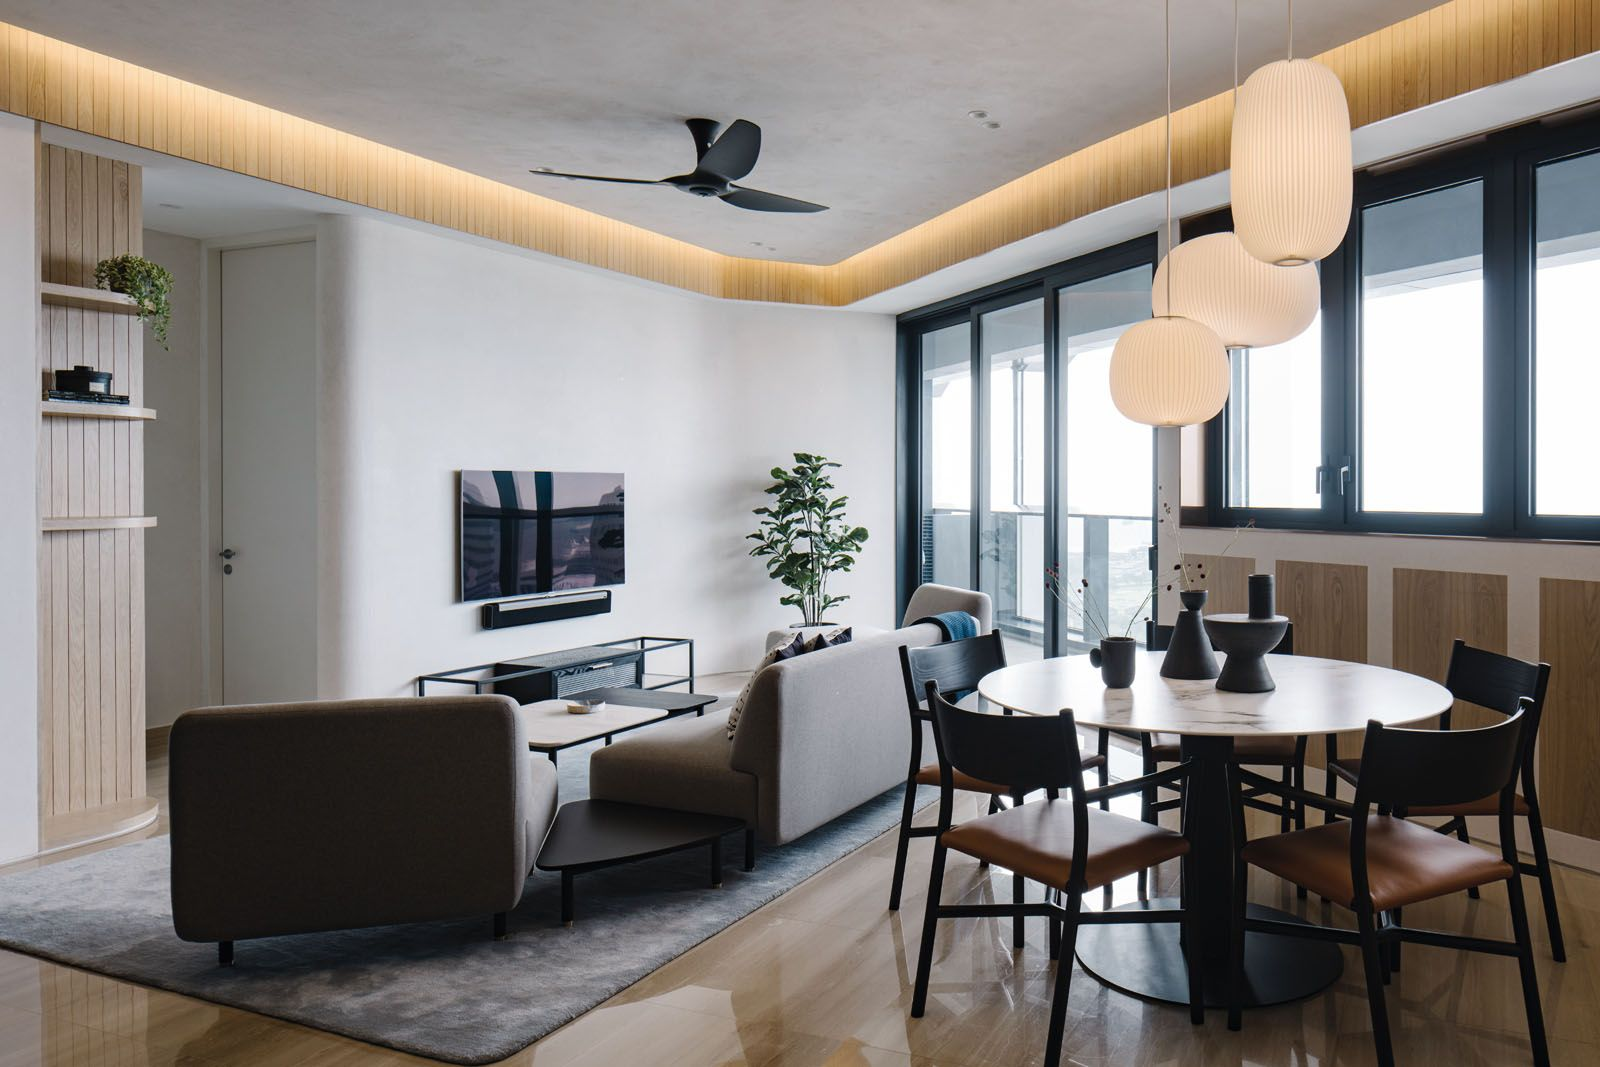 Home Tour This Minimalist Penthouse Combines Scandinavian Chic With Japanese Influences Tatler Philippines